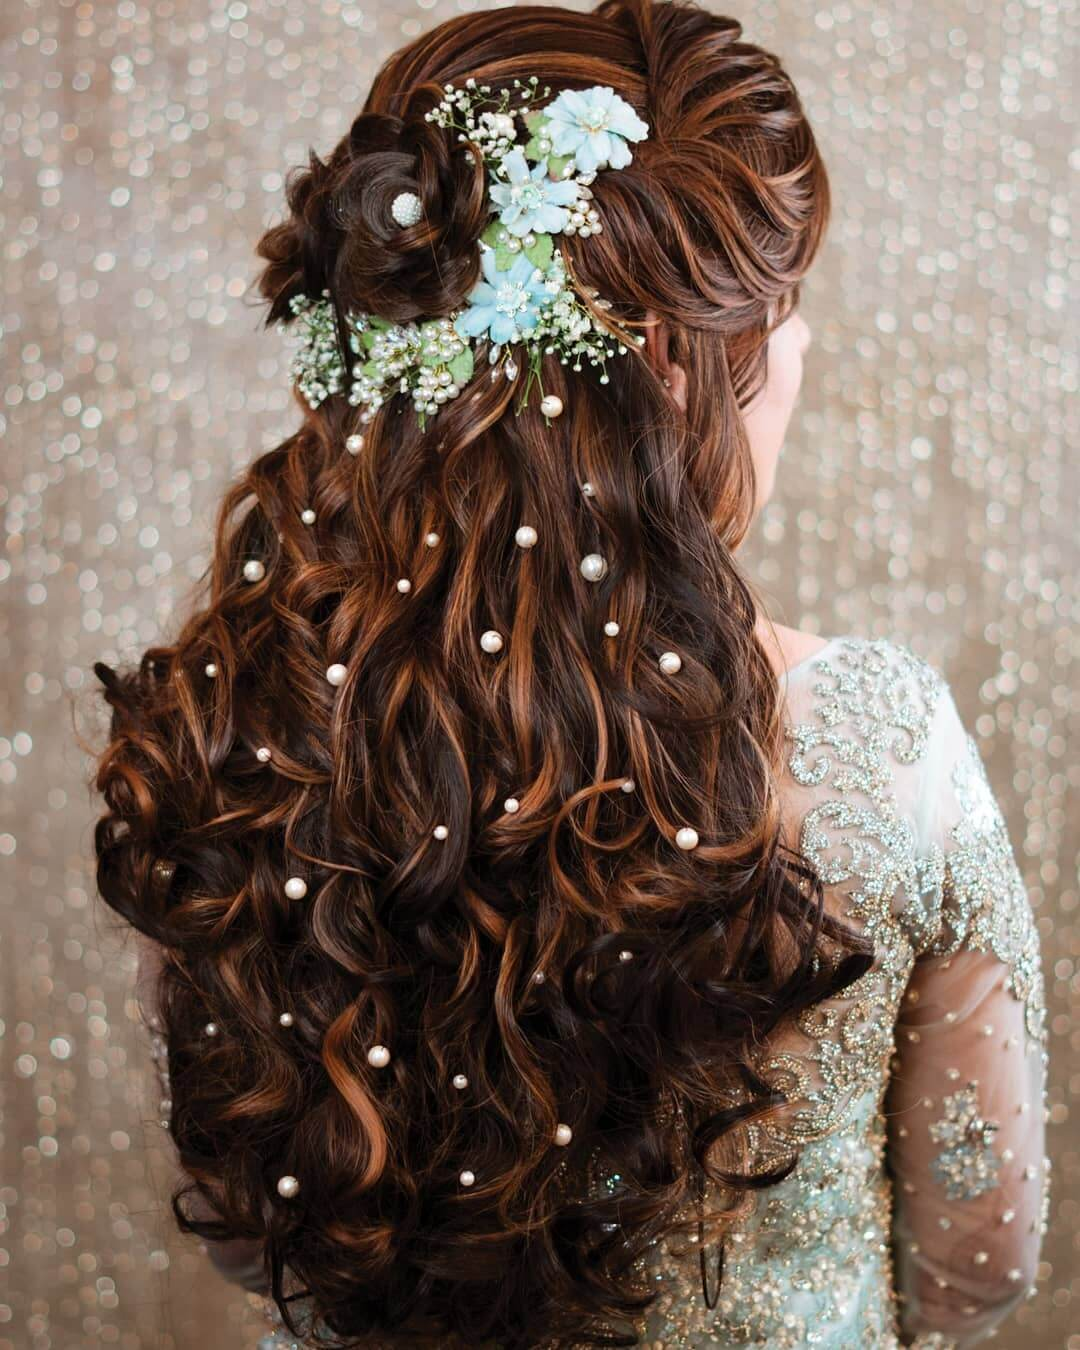 Ringlets and curls Hairstyles with Gown for Indian Wedding